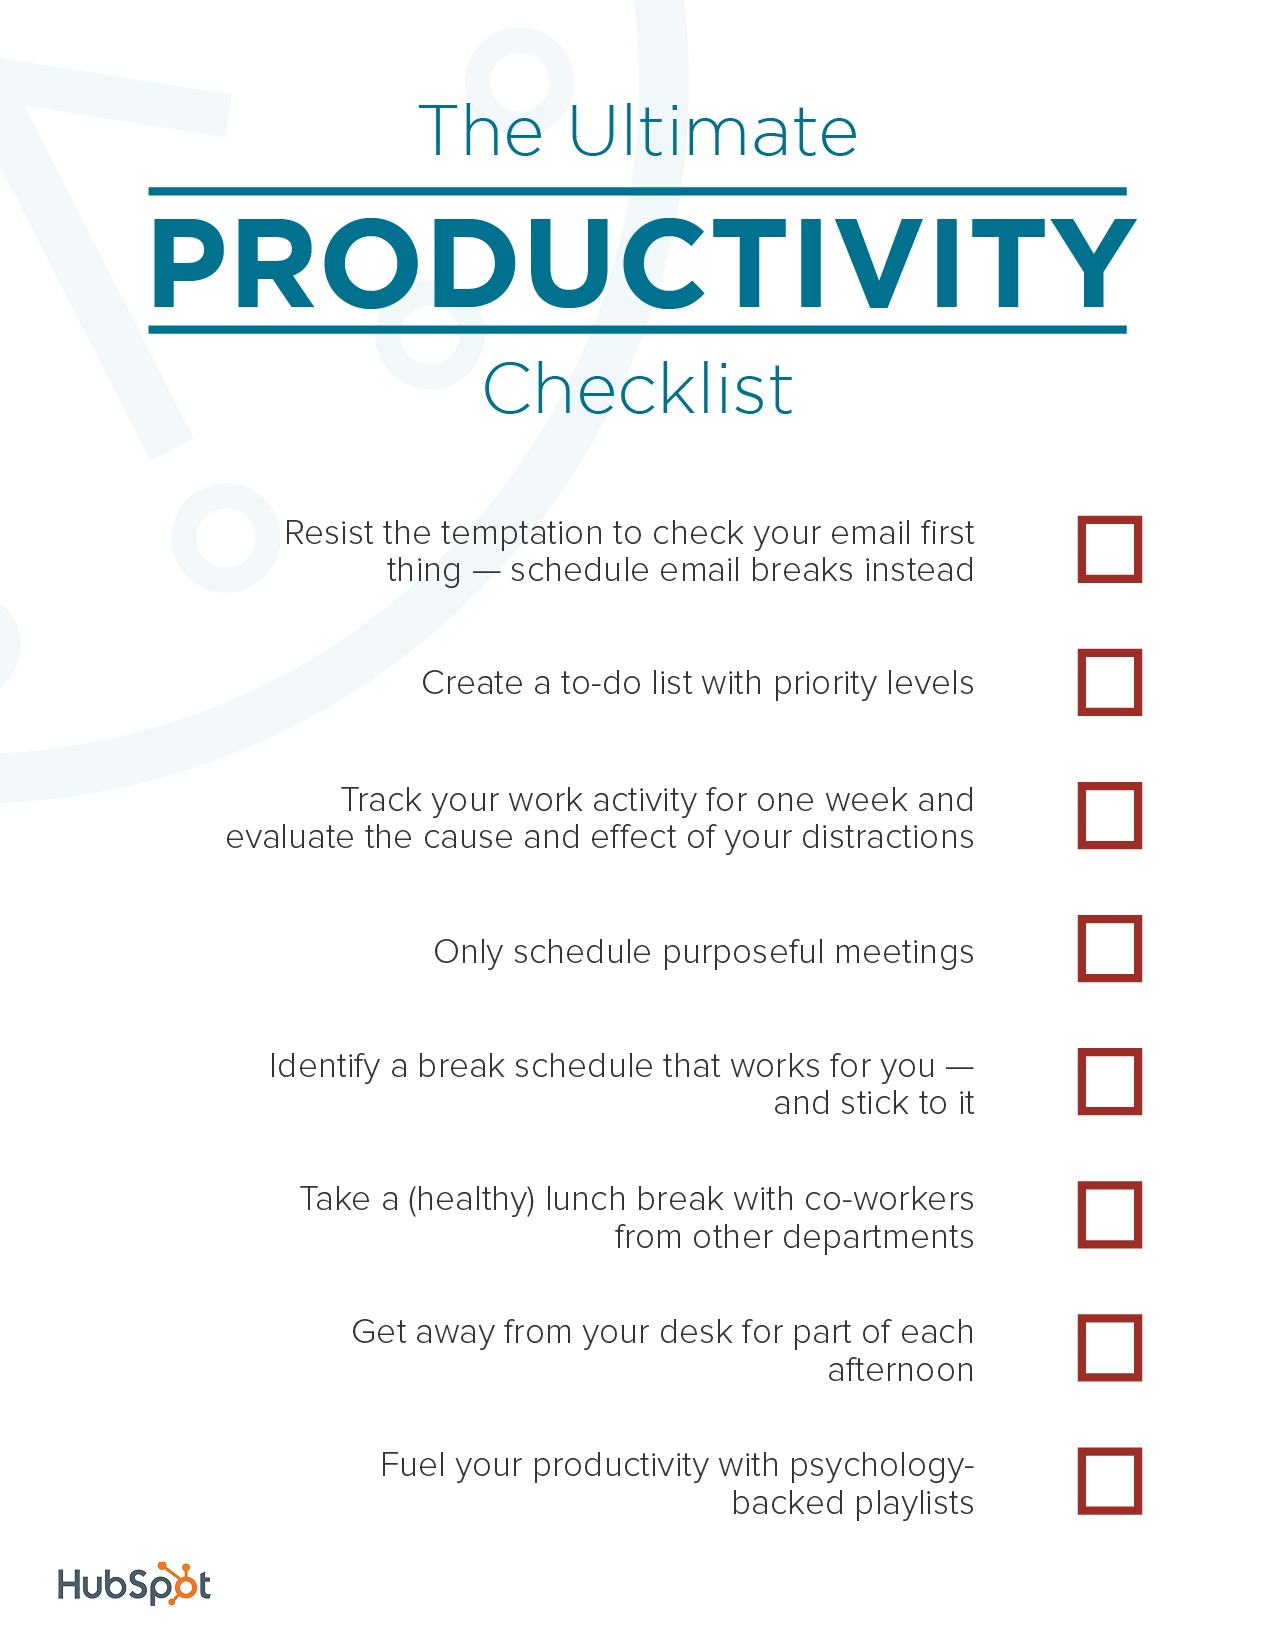 How_to_Be_More_Productive-p19.jpg